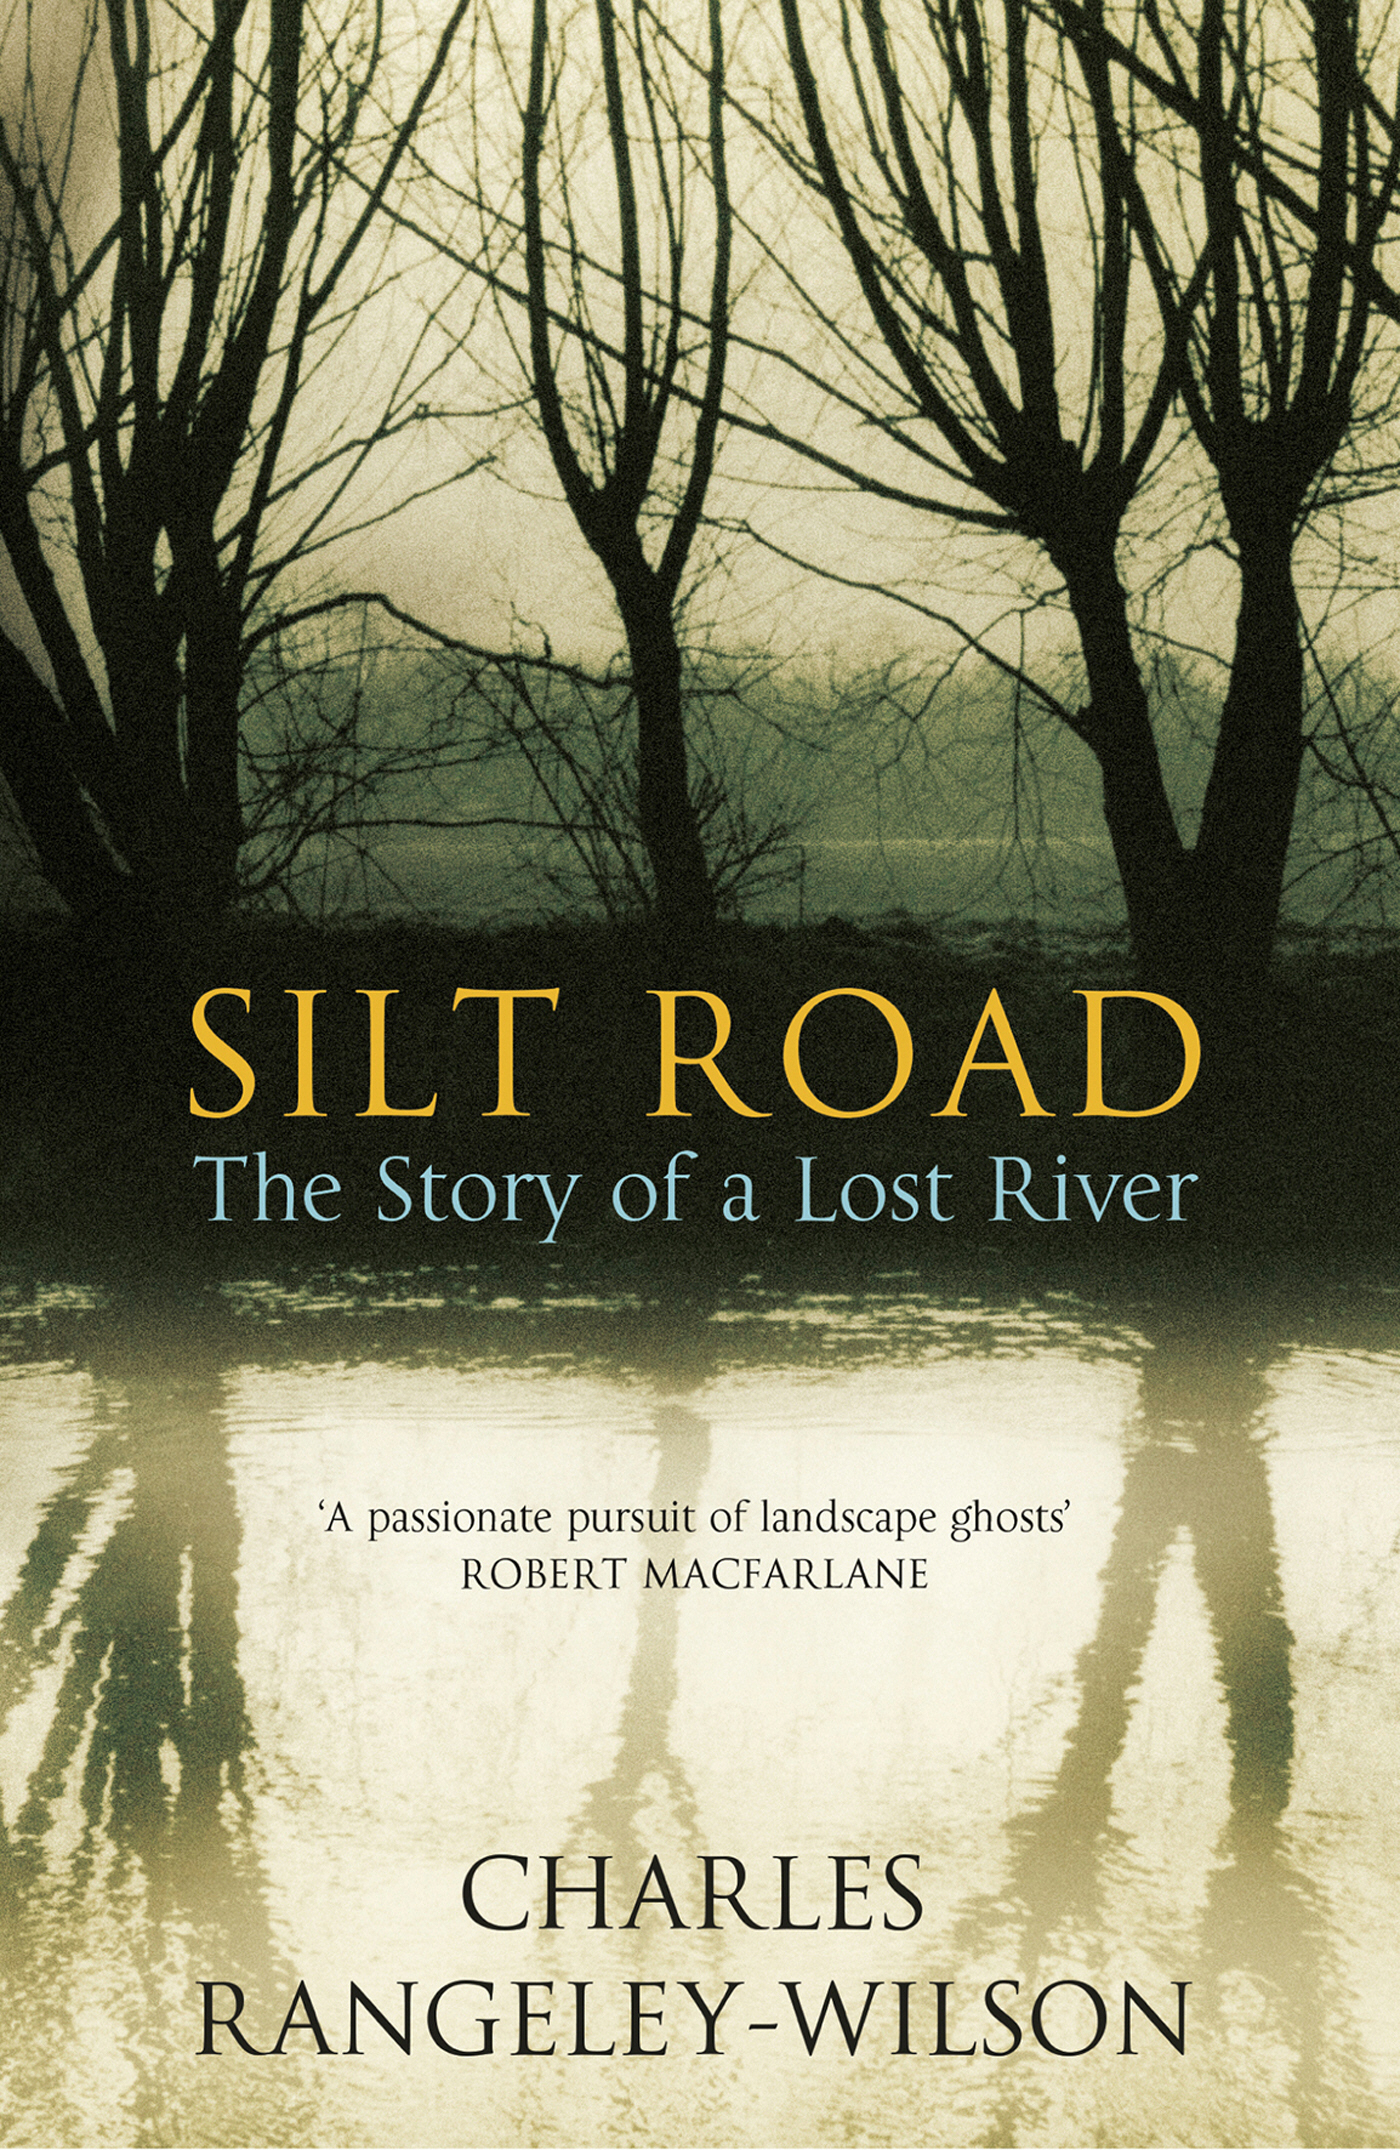 Silt Road The Story of a Lost River